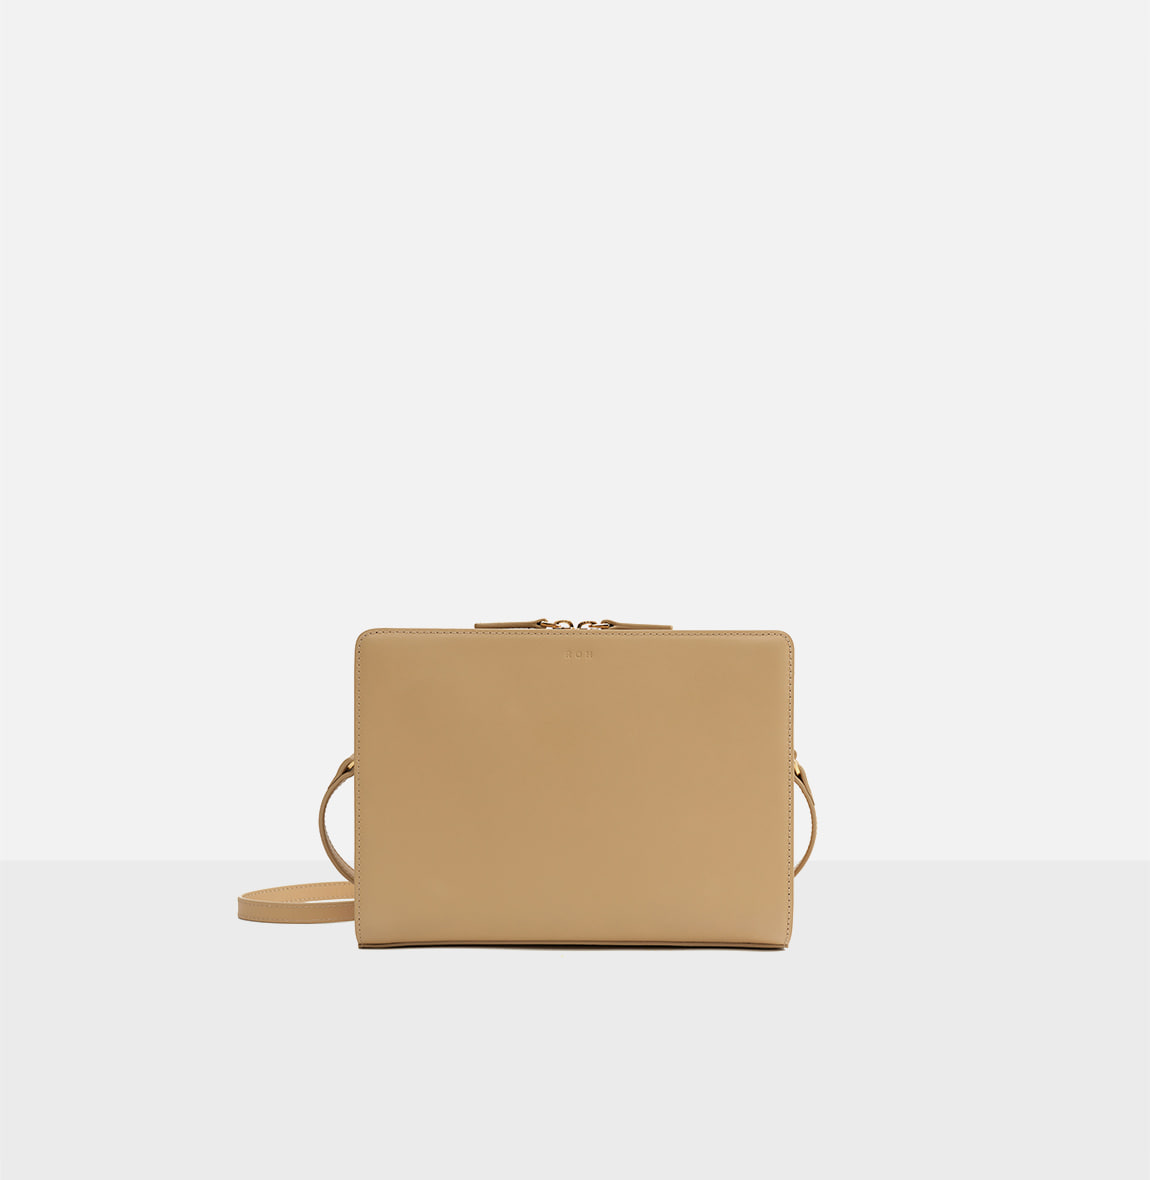 ROH Squarebag Light ocher